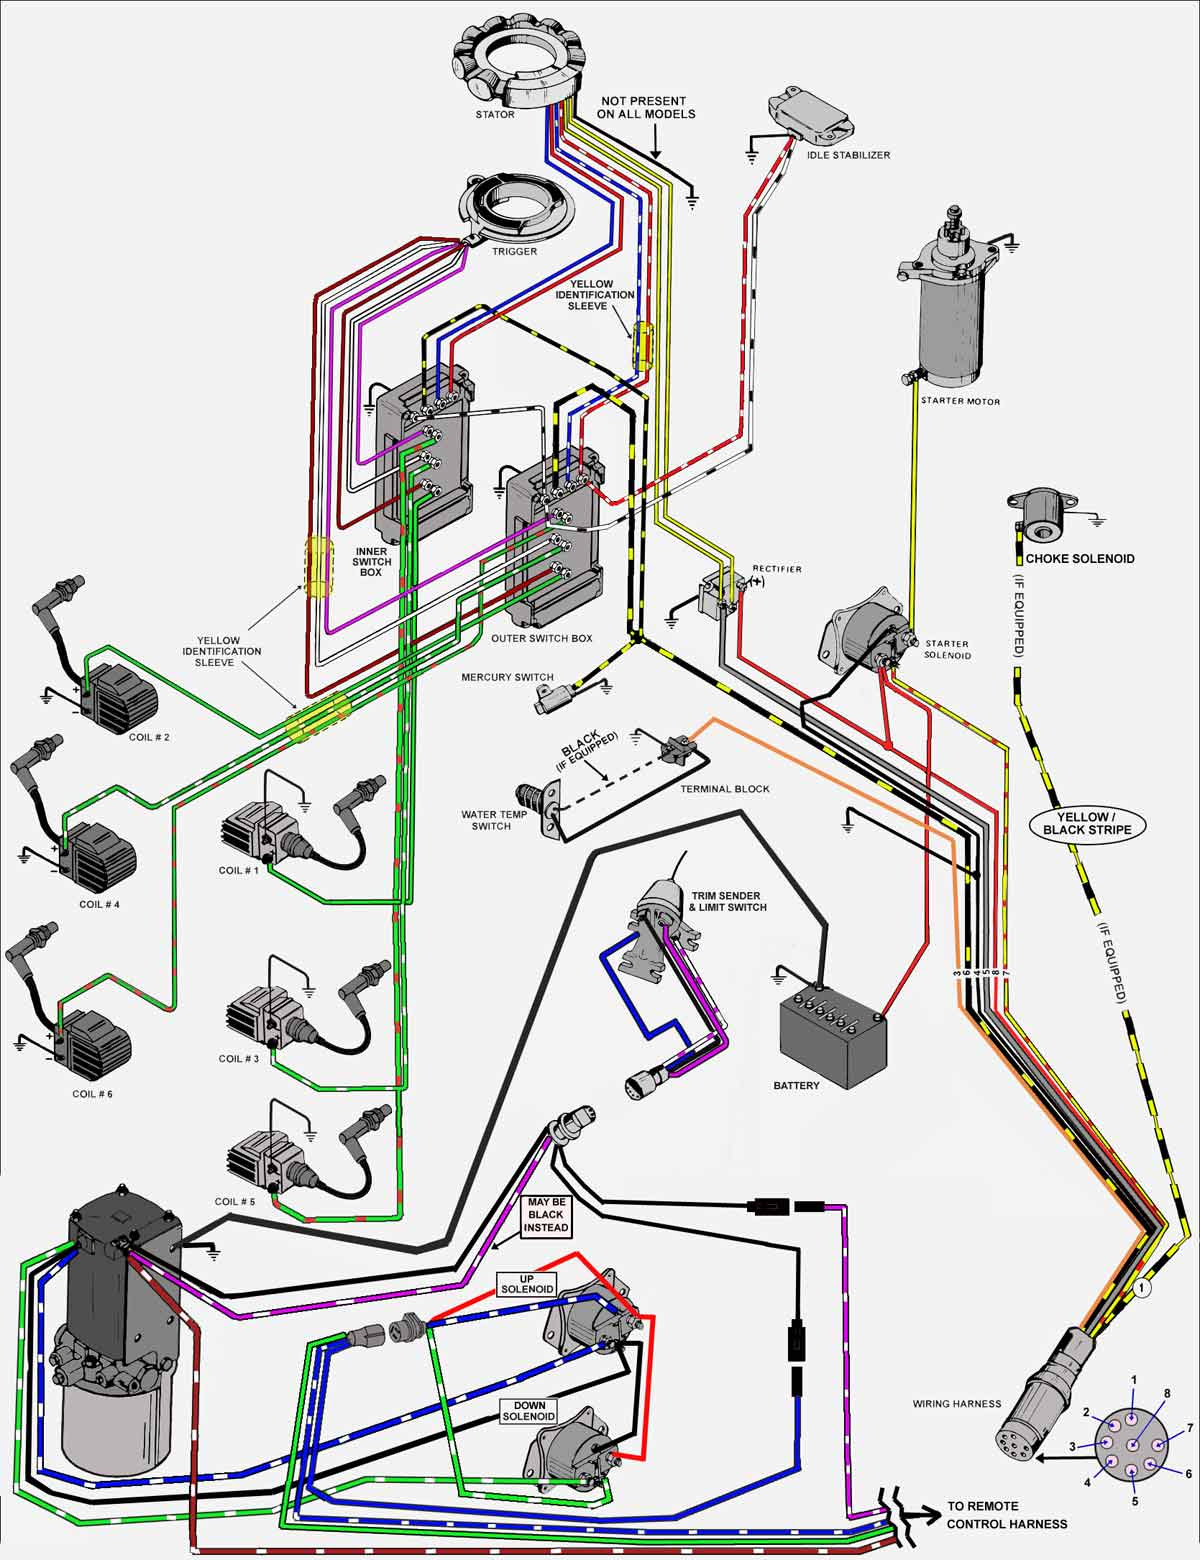 Diagram Cmc Tilt And Trim Wiring Diagram Full Version Hd Quality Wiring Diagram Dowiring18 Lasagradellacastagna It